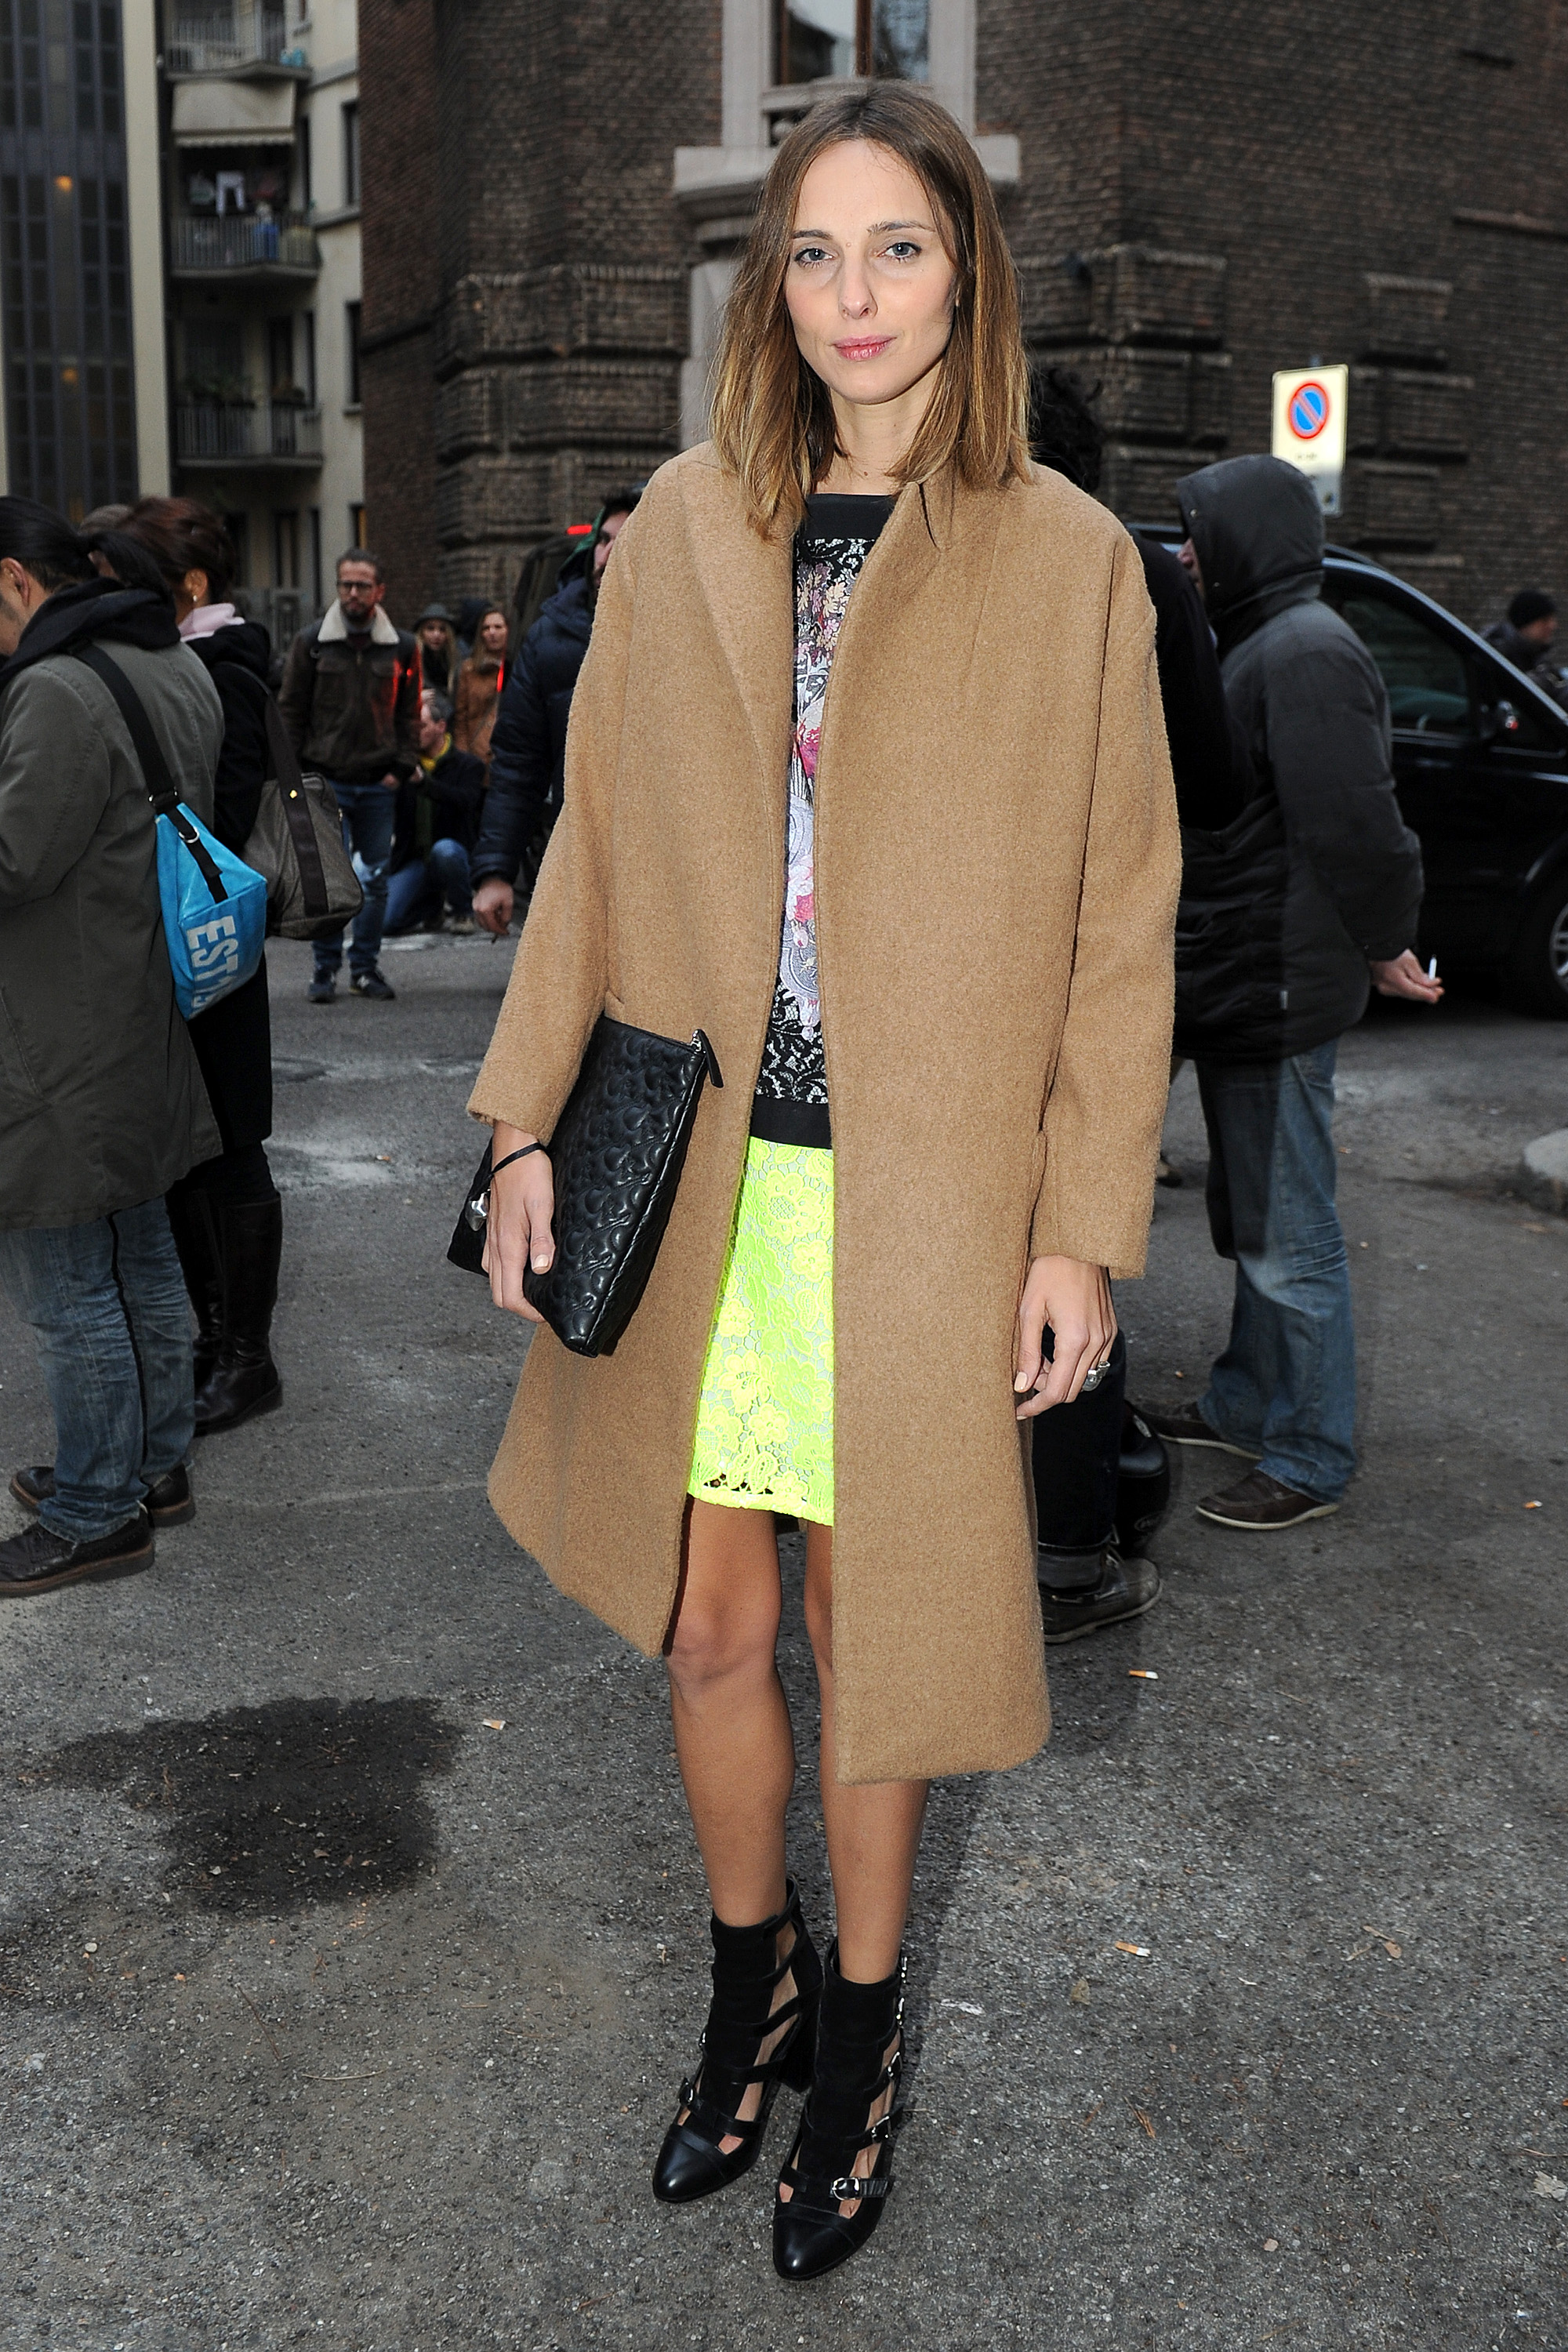 Candela Novembre at the Alberta Ferretti Fall 2013 show in Milan.